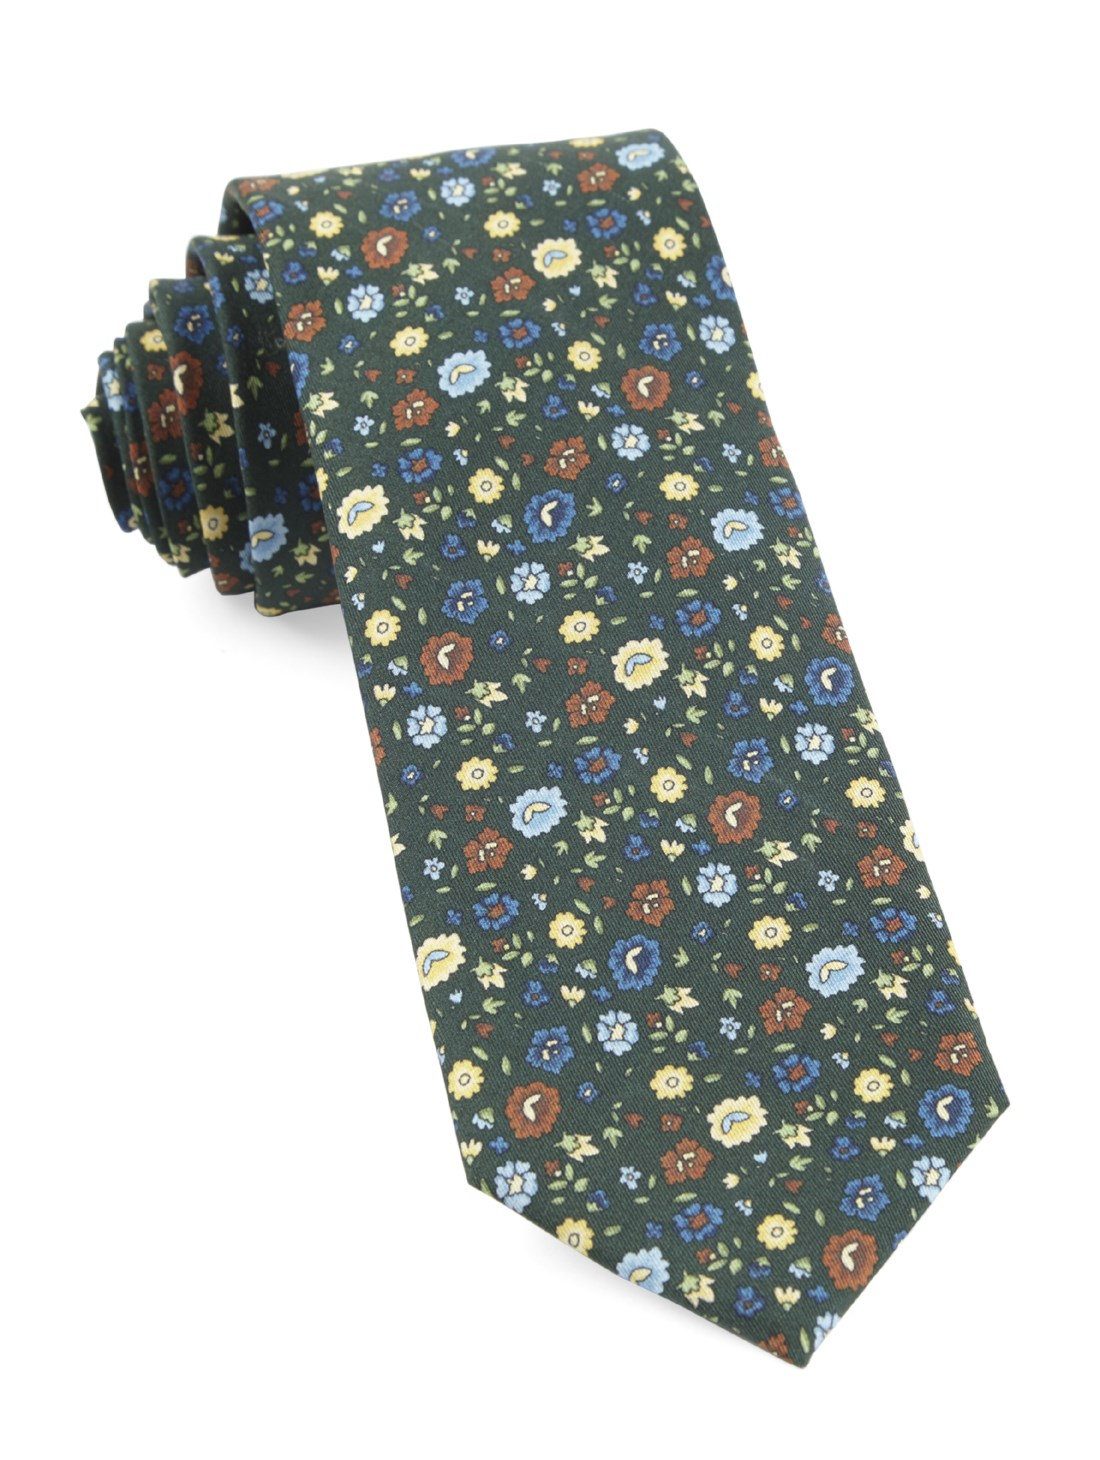 "Morrissey Flowers - Hunter Green - 2.5"" x 58"" - Ties"